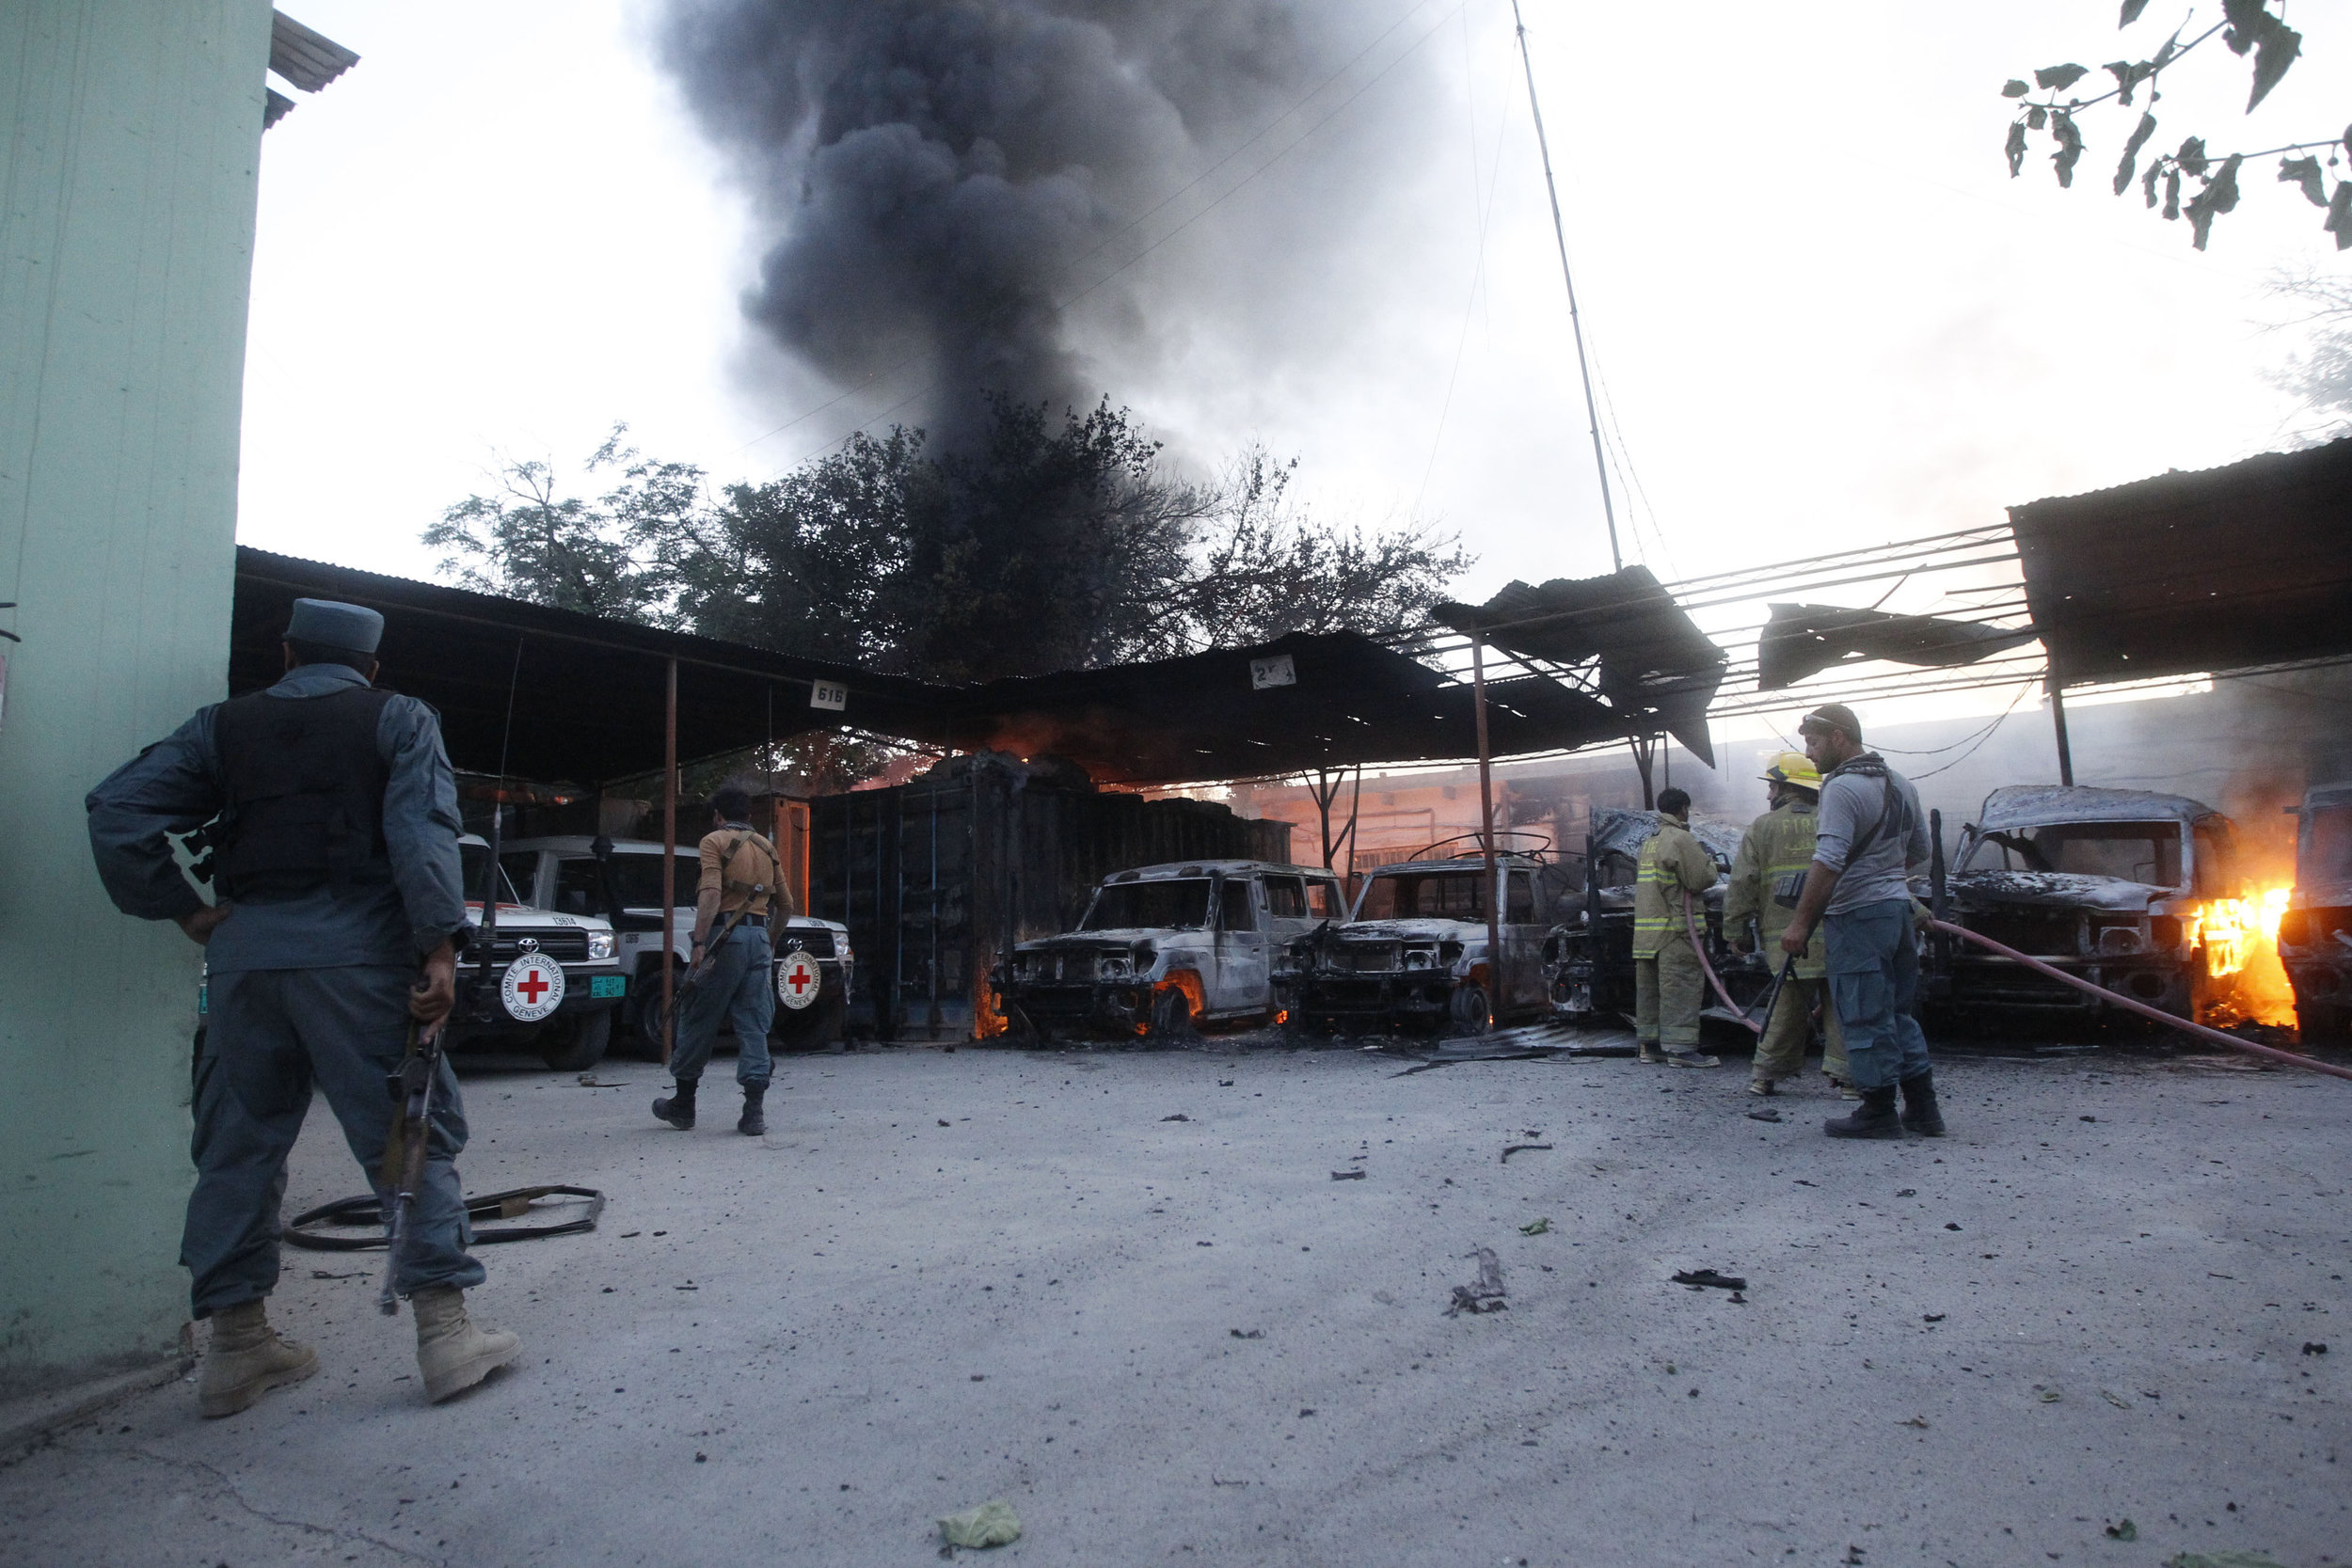 Jalalabad, Afghanistan. The local ICRC office following an attack by unidentified armed men. One staff member, an Afghan guard, was killed and another, an expatriate, was slightly wounded.